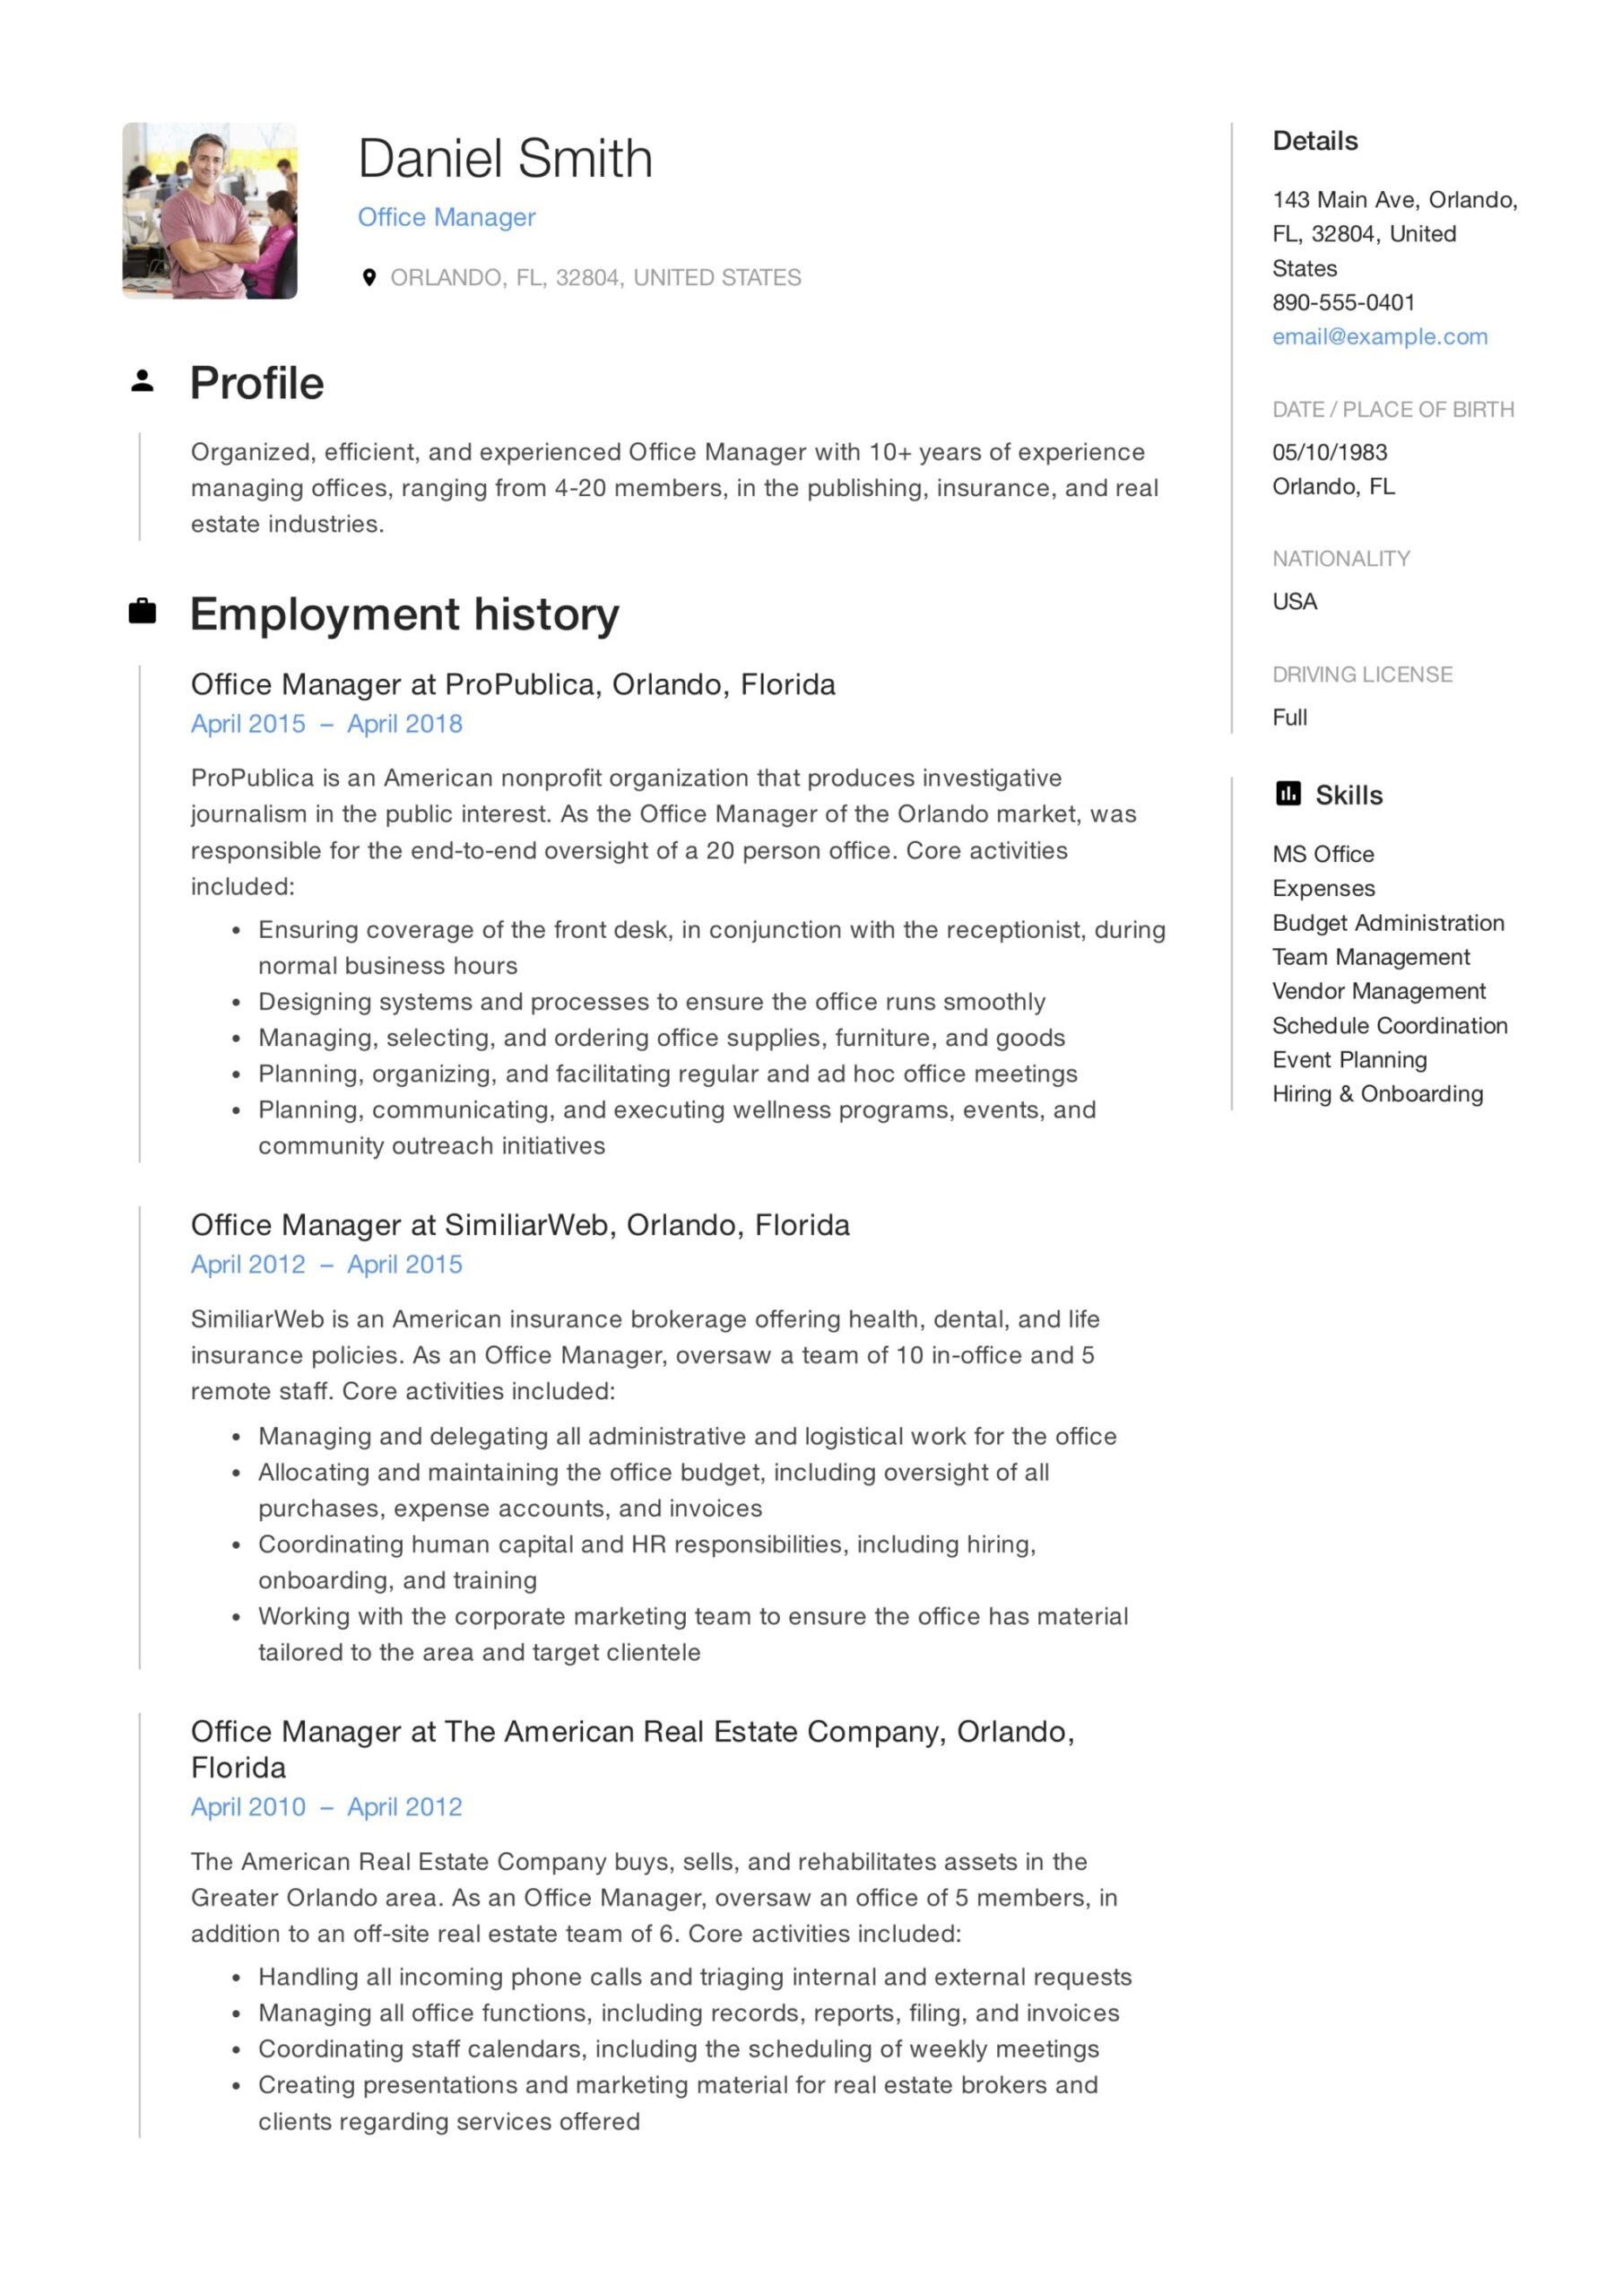 office manager resume guide samples pdf construction sample post anonymously government Resume Construction Office Manager Resume